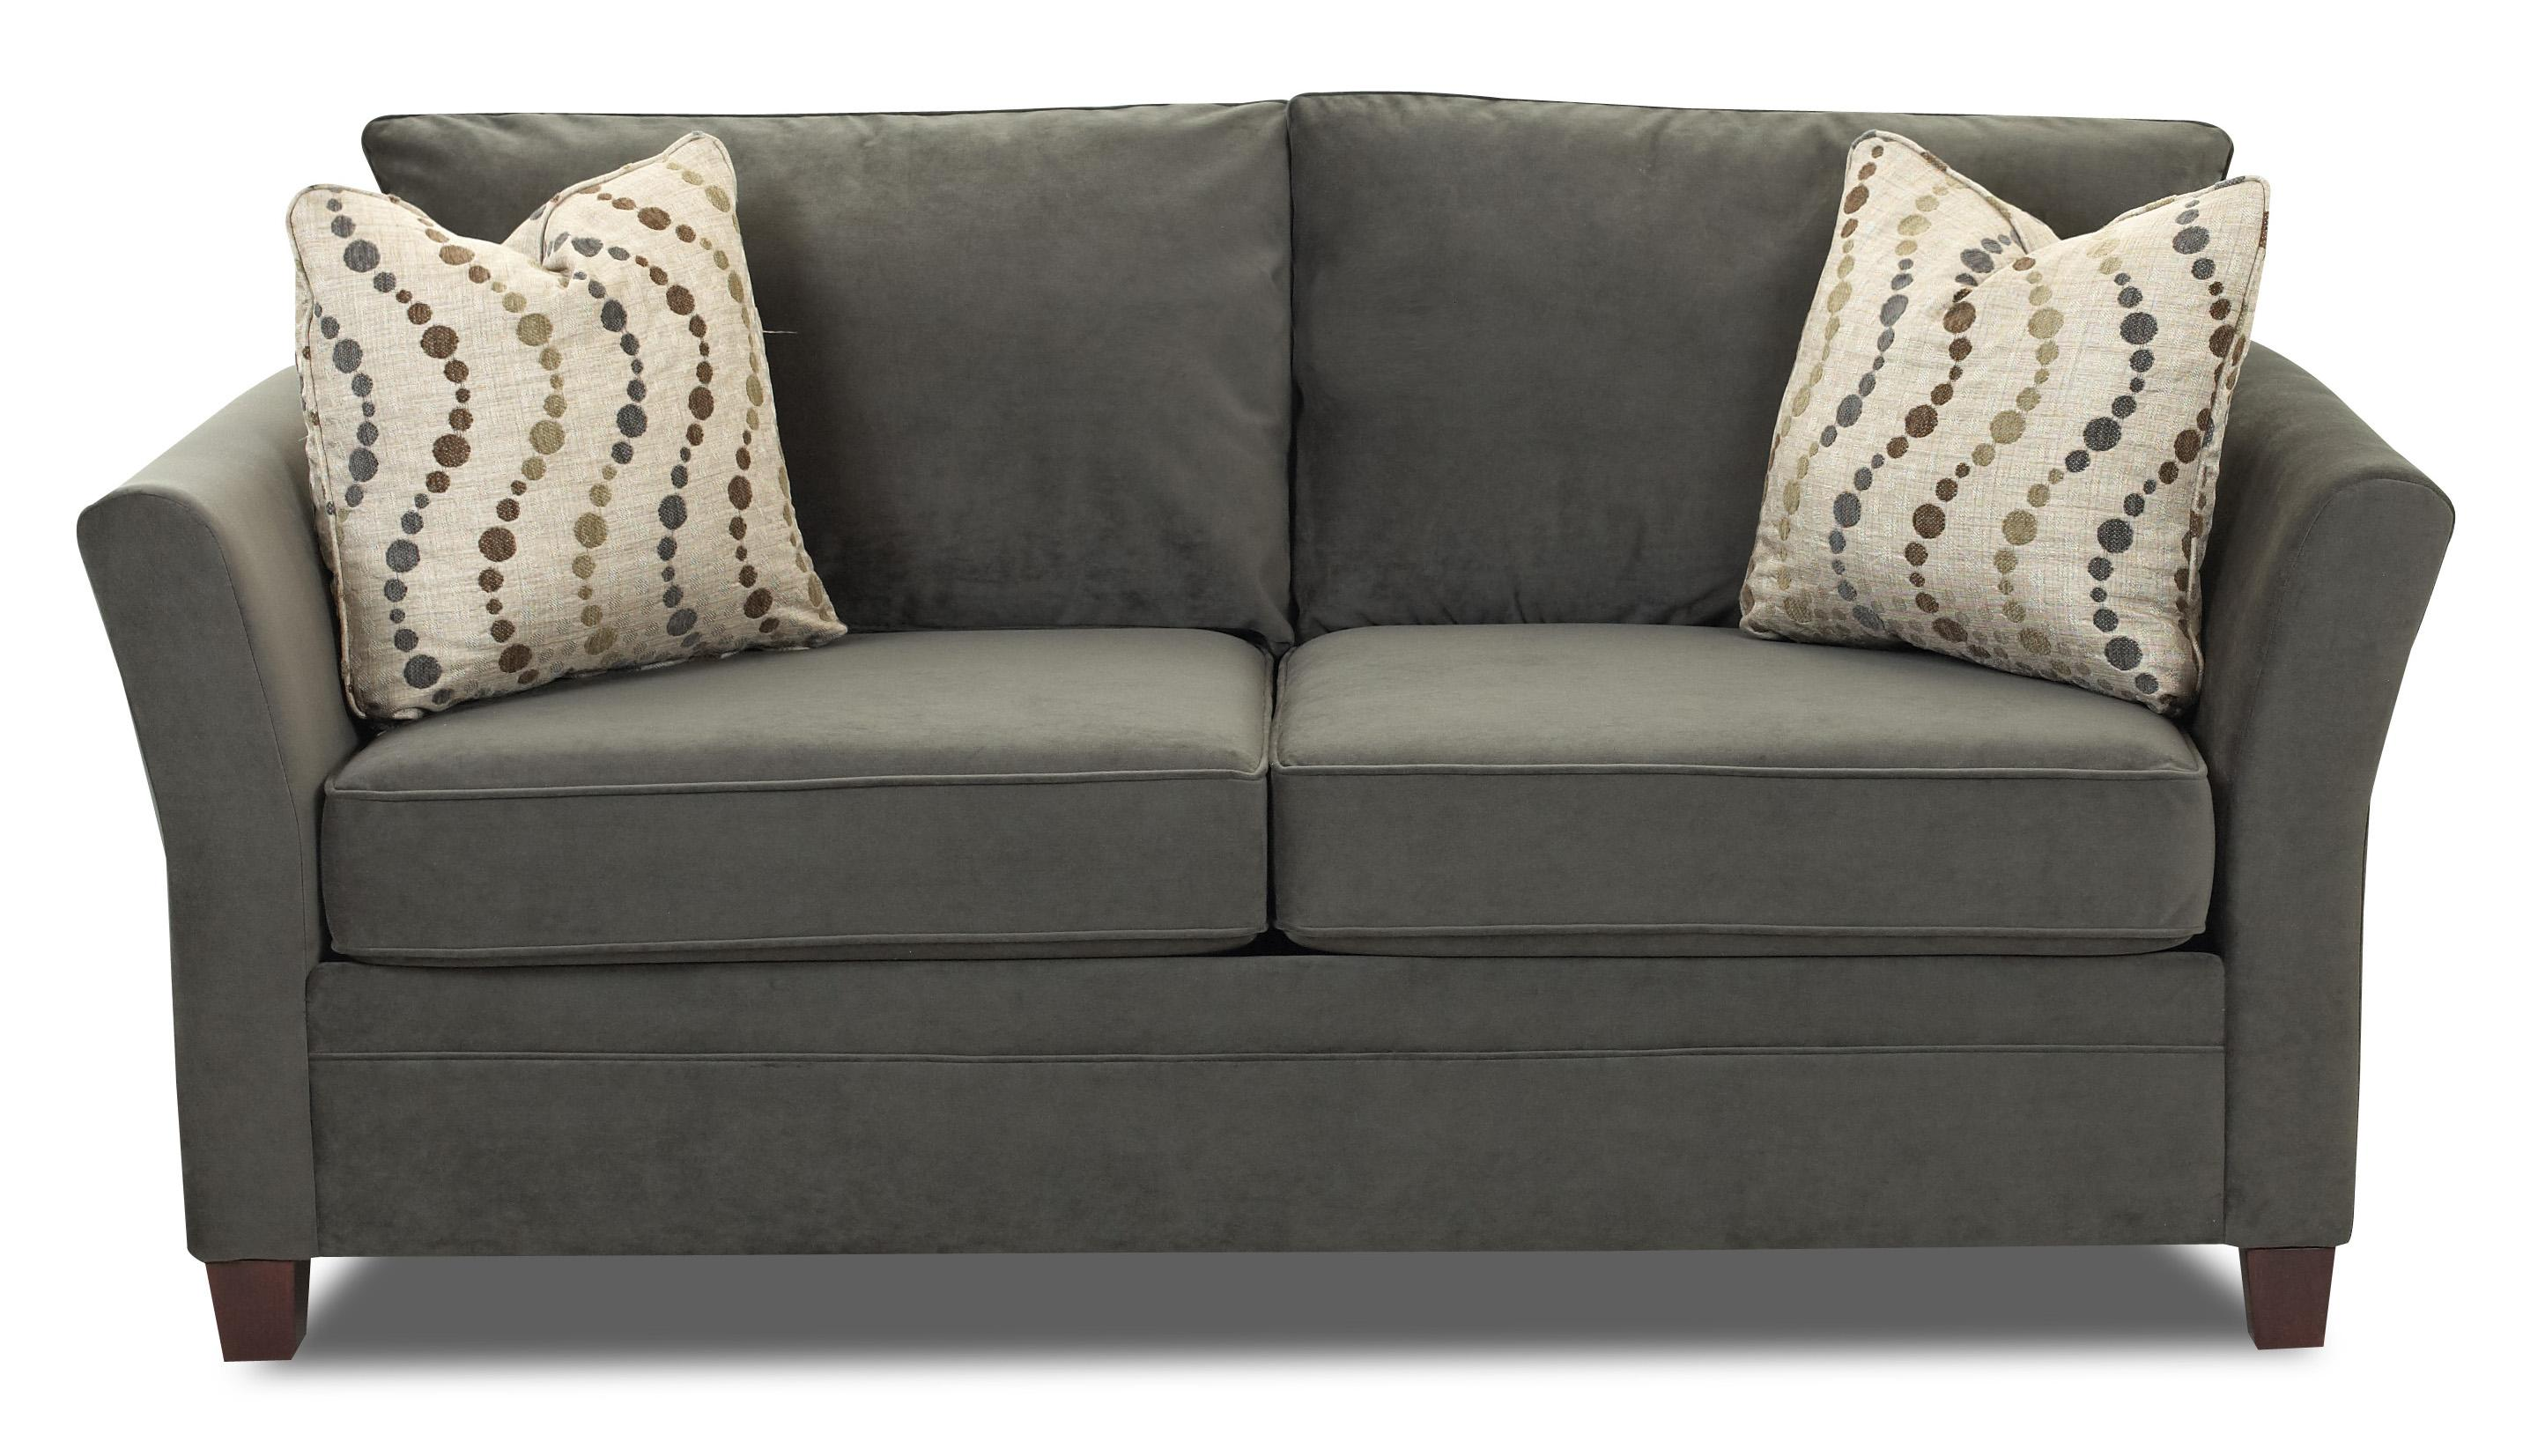 Delightful Contemporary Studio Size Sofa